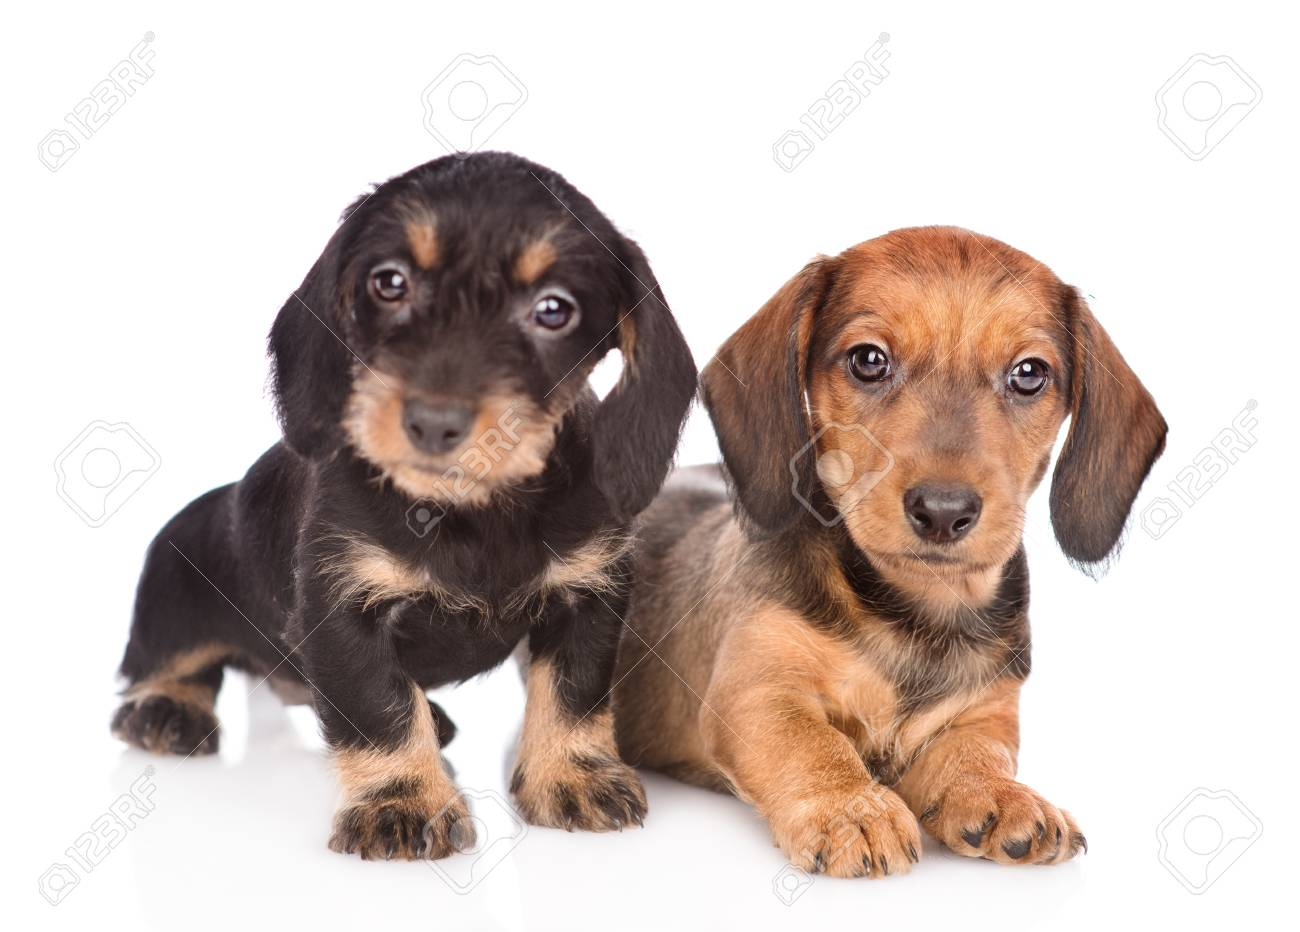 Two Dachshund Puppies Looking At Camera Isolated On White Background Stock Photo Picture And Royalty Free Image Image 93331816